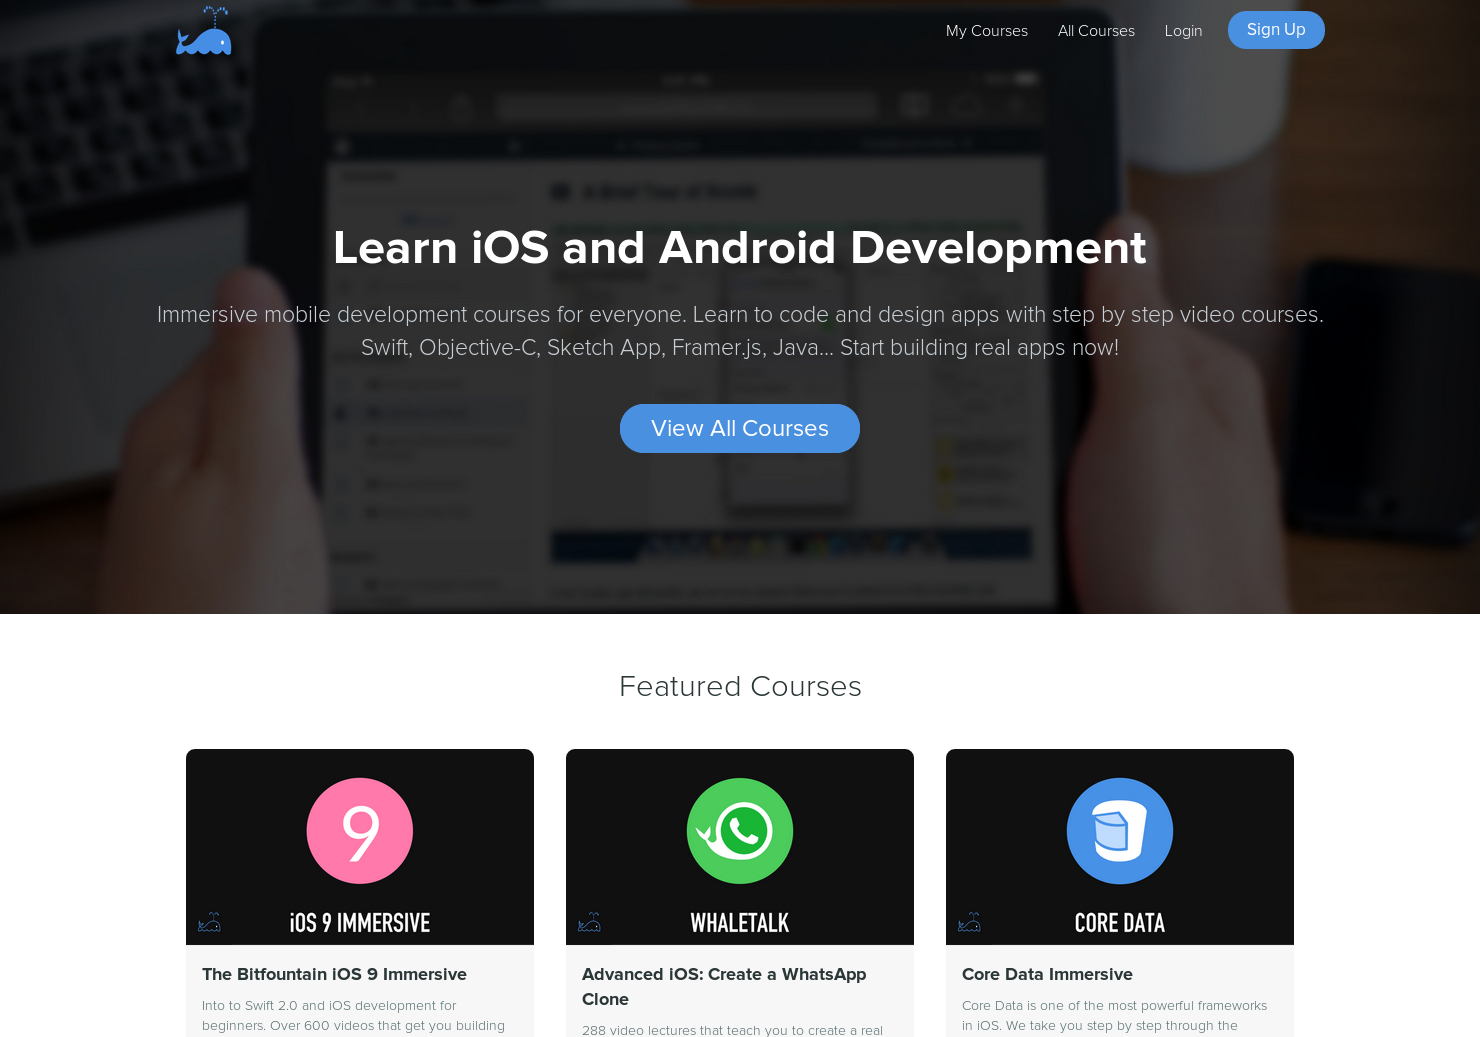 The Complete iOS 8 Course - Learn by Building 14 Different Apps in